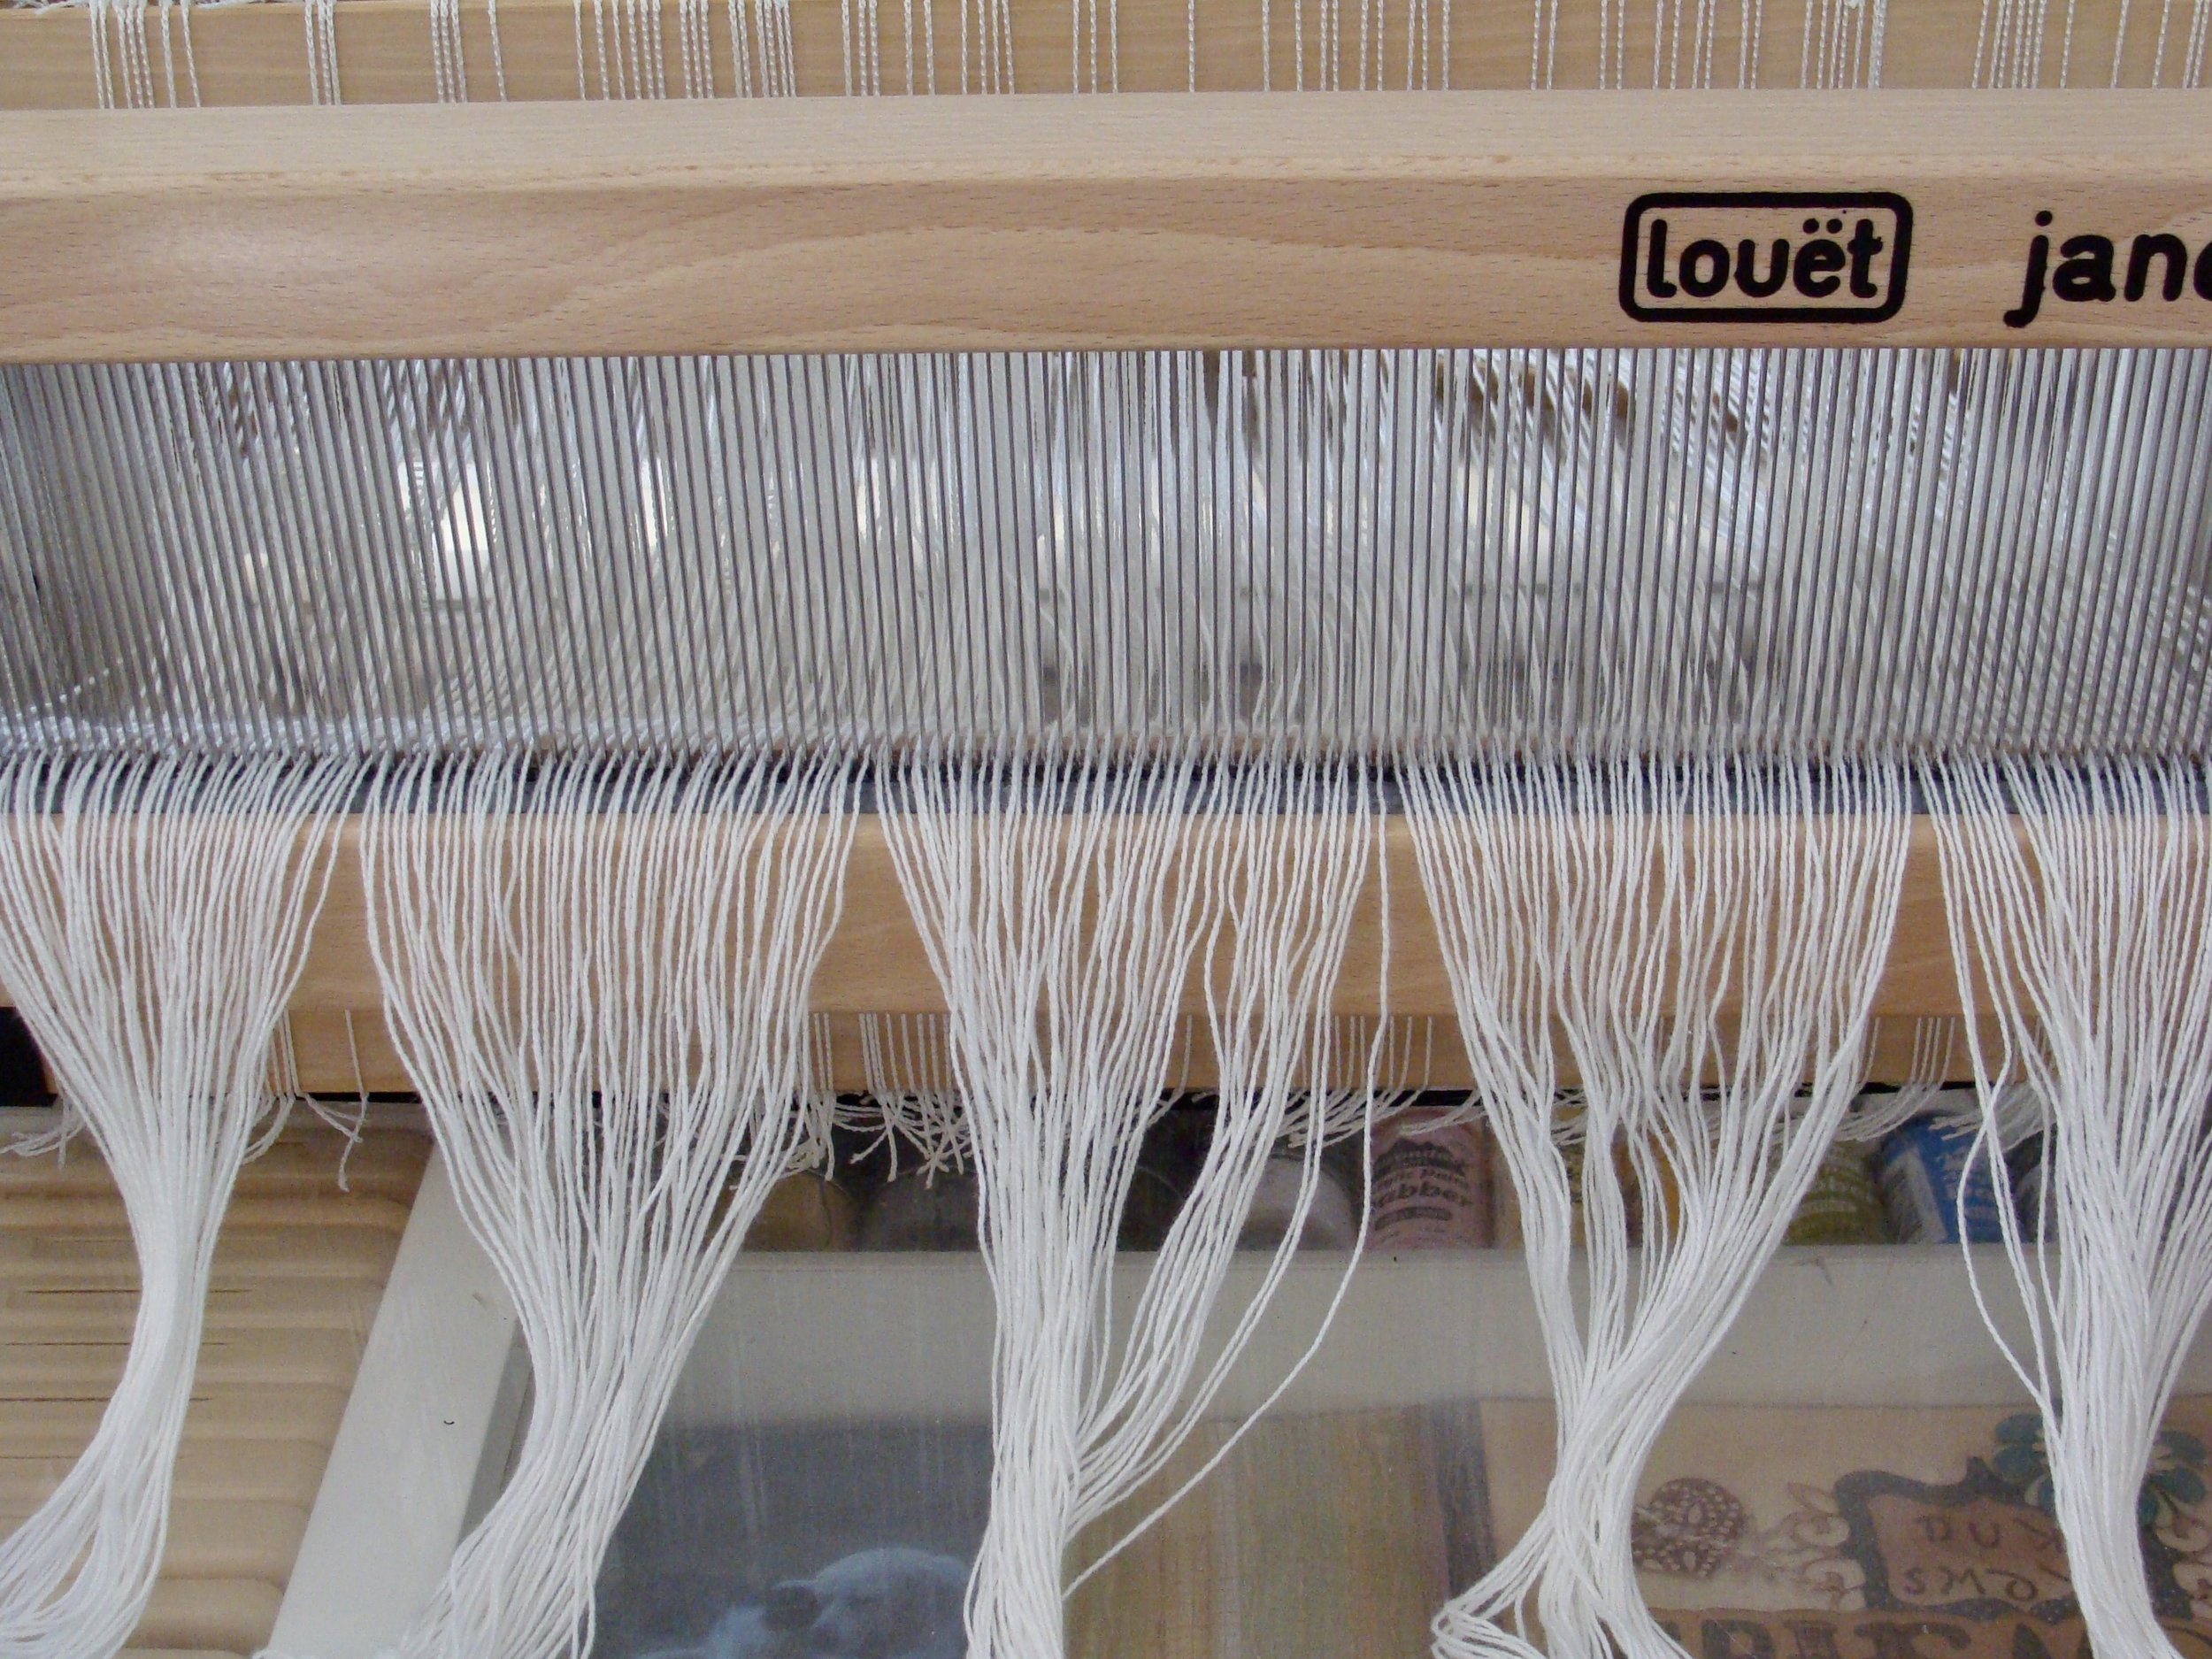 sleying the warp in the reed Louet Jane